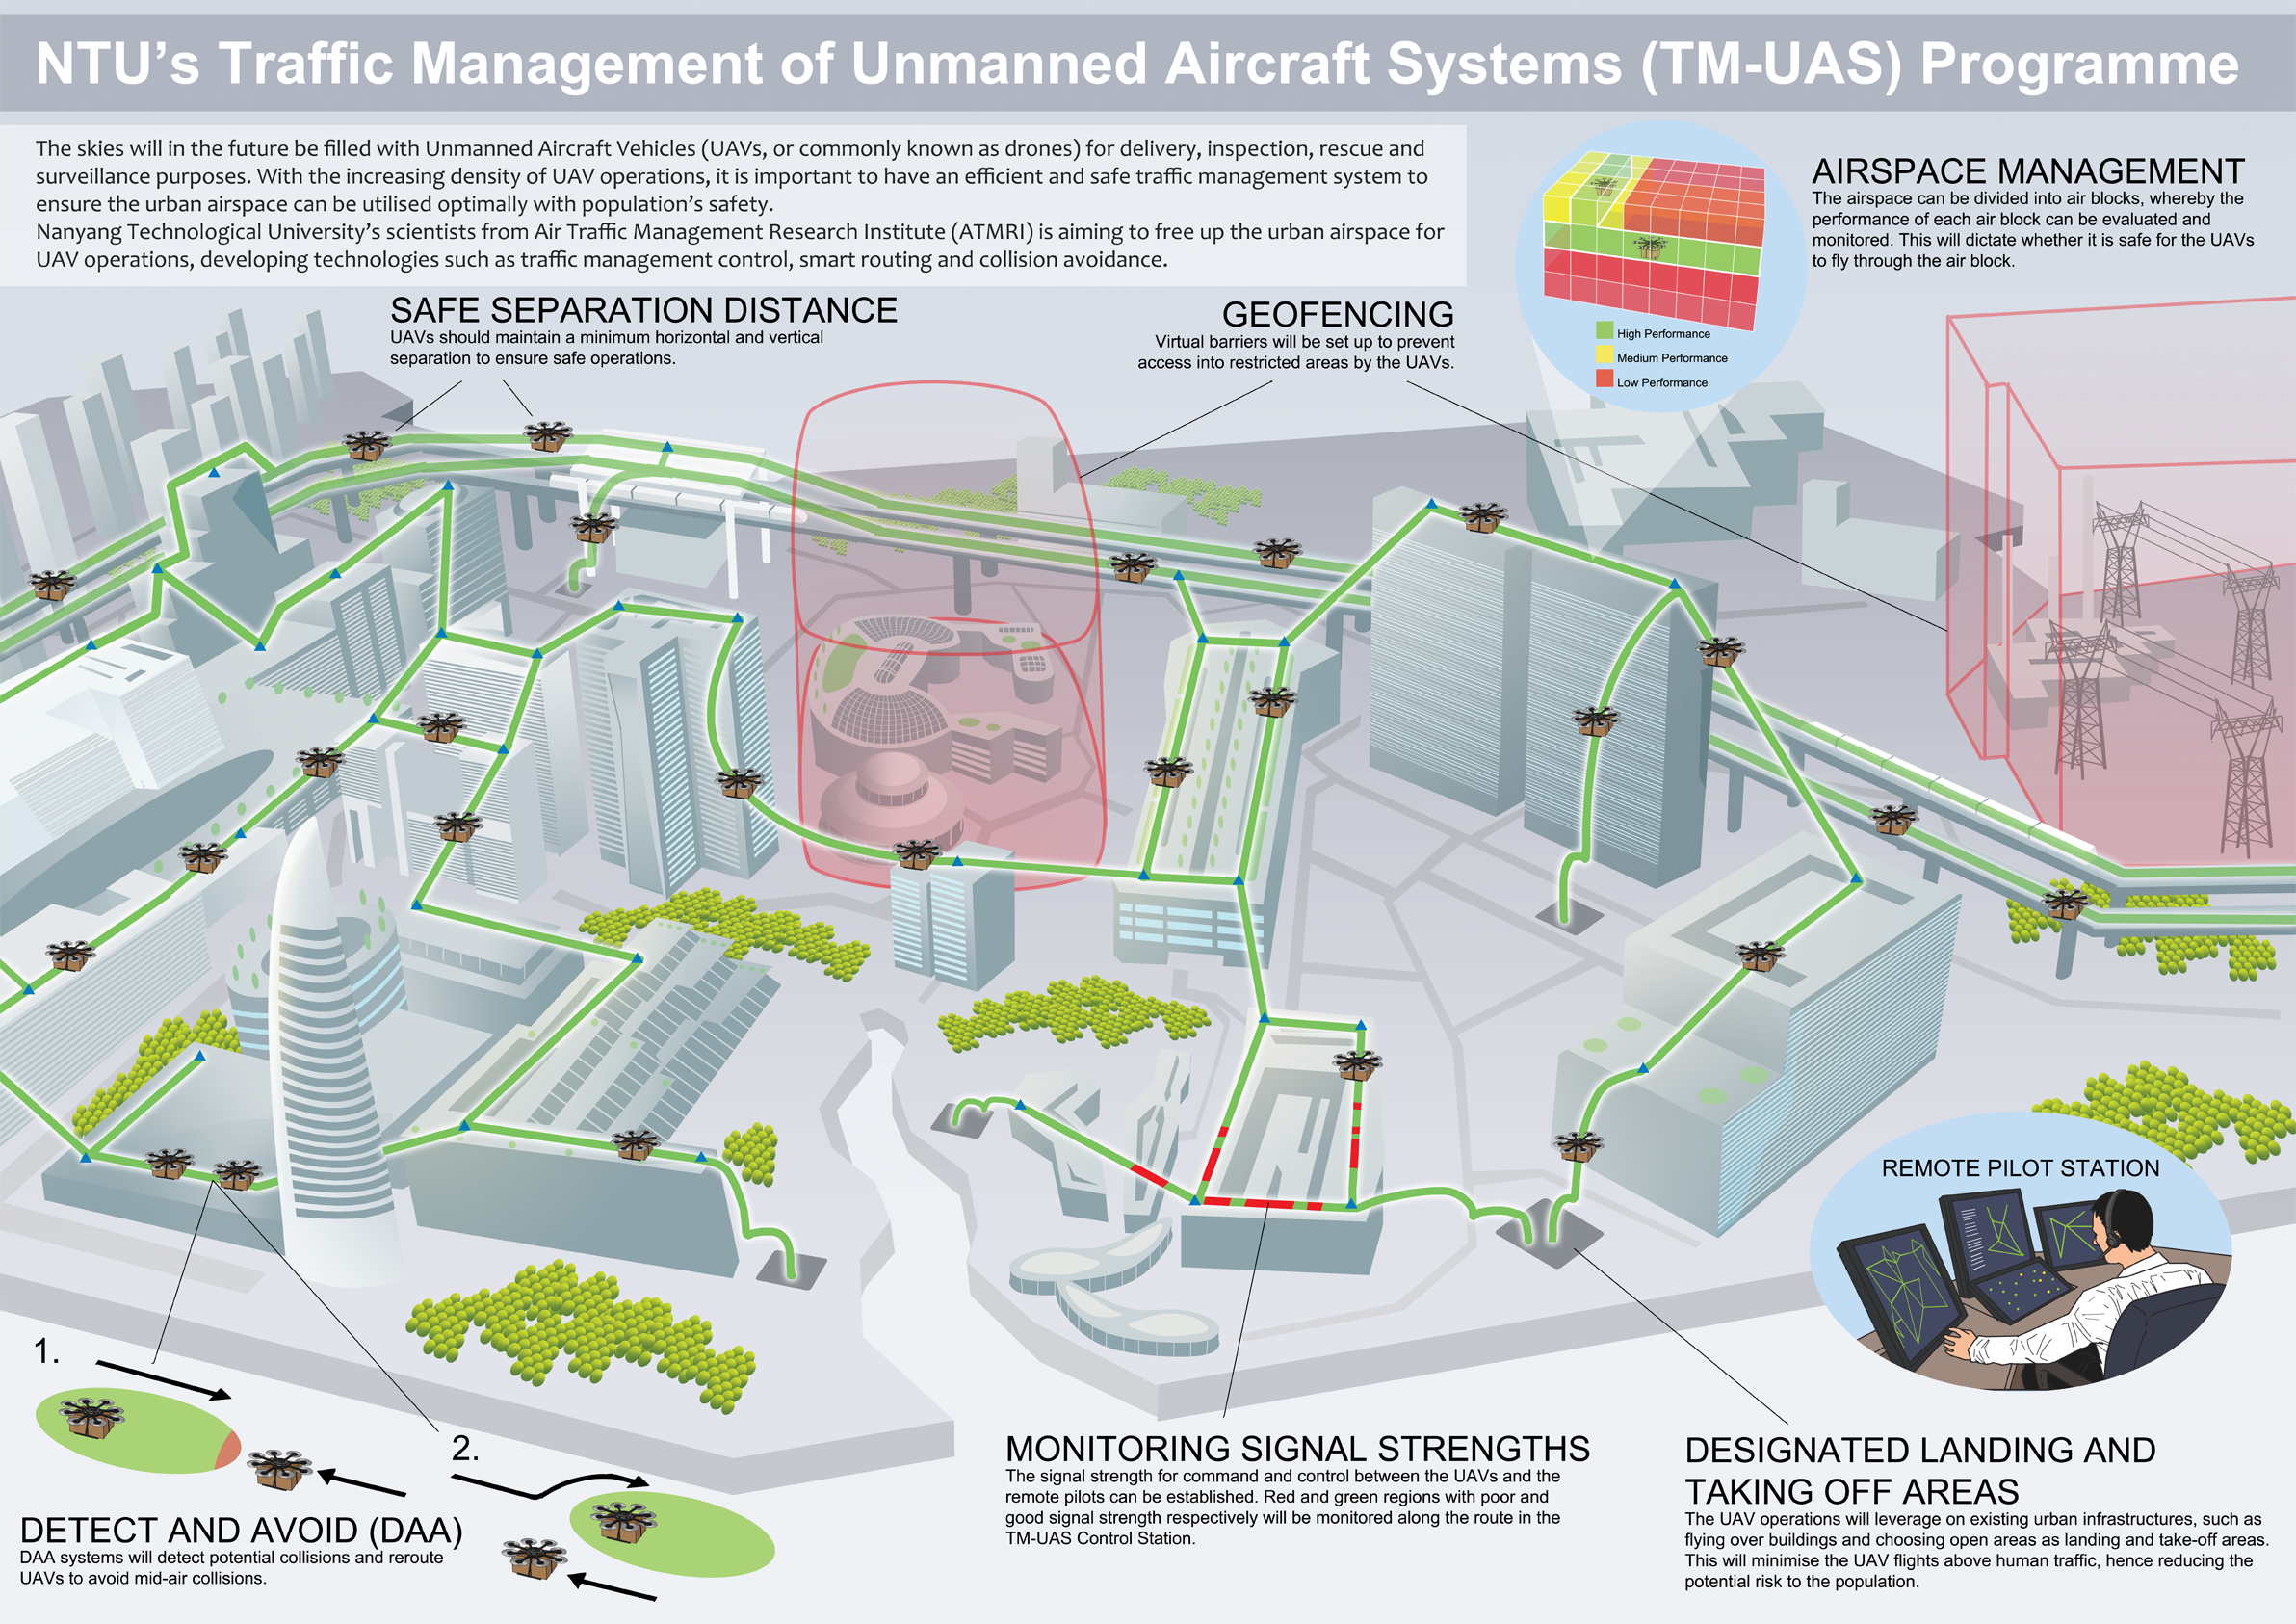 oversight methods for domestic unmanned aerial Drone surveillance can be regarded either as a justifiable, impartial practice serving the interests of all or as an oppressive technique catering to the interests of some at the expense of.